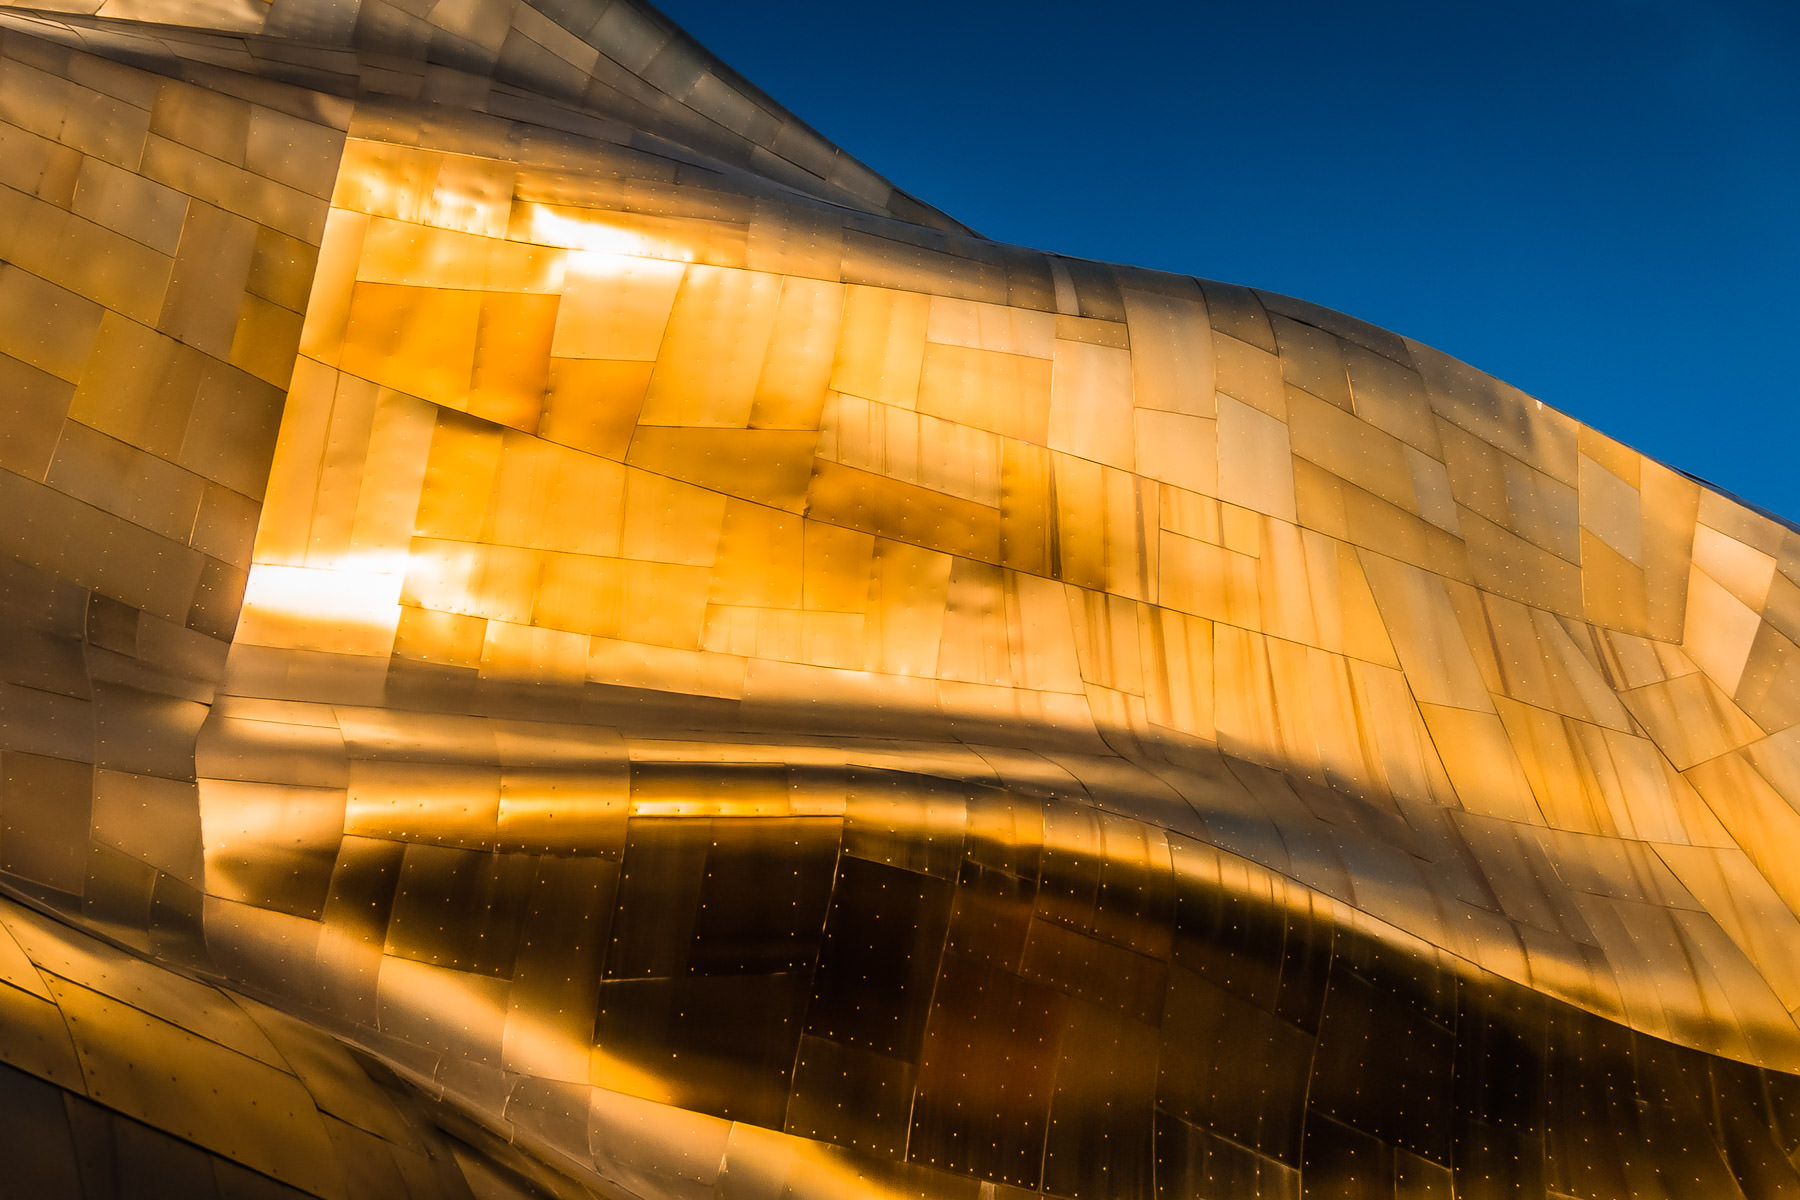 The early-morning sun lights the organic curves of the stainless steel roof of architect Frank Gehry's Experience Music Project in Seattle, Washington.